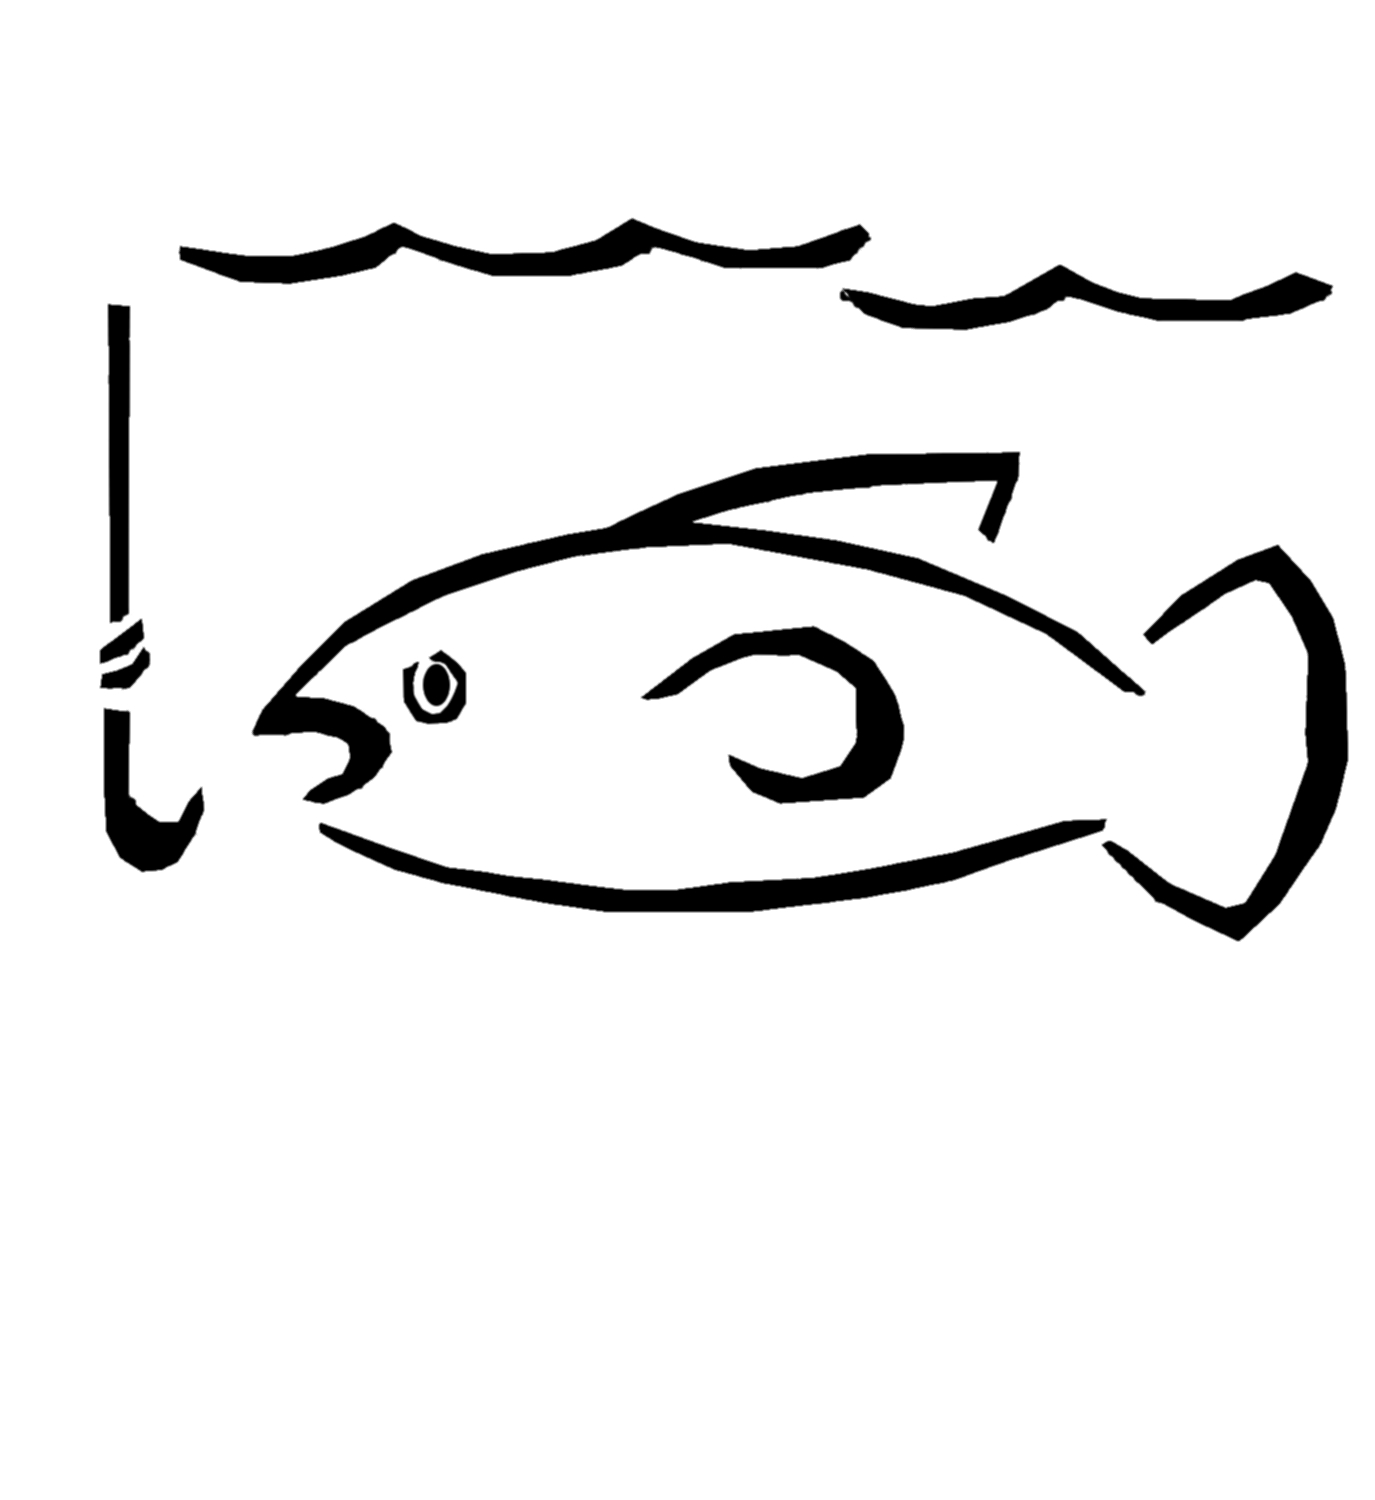 Free Fishing Hook Cliparts, Download Free Clip Art, Free Clip Art on.